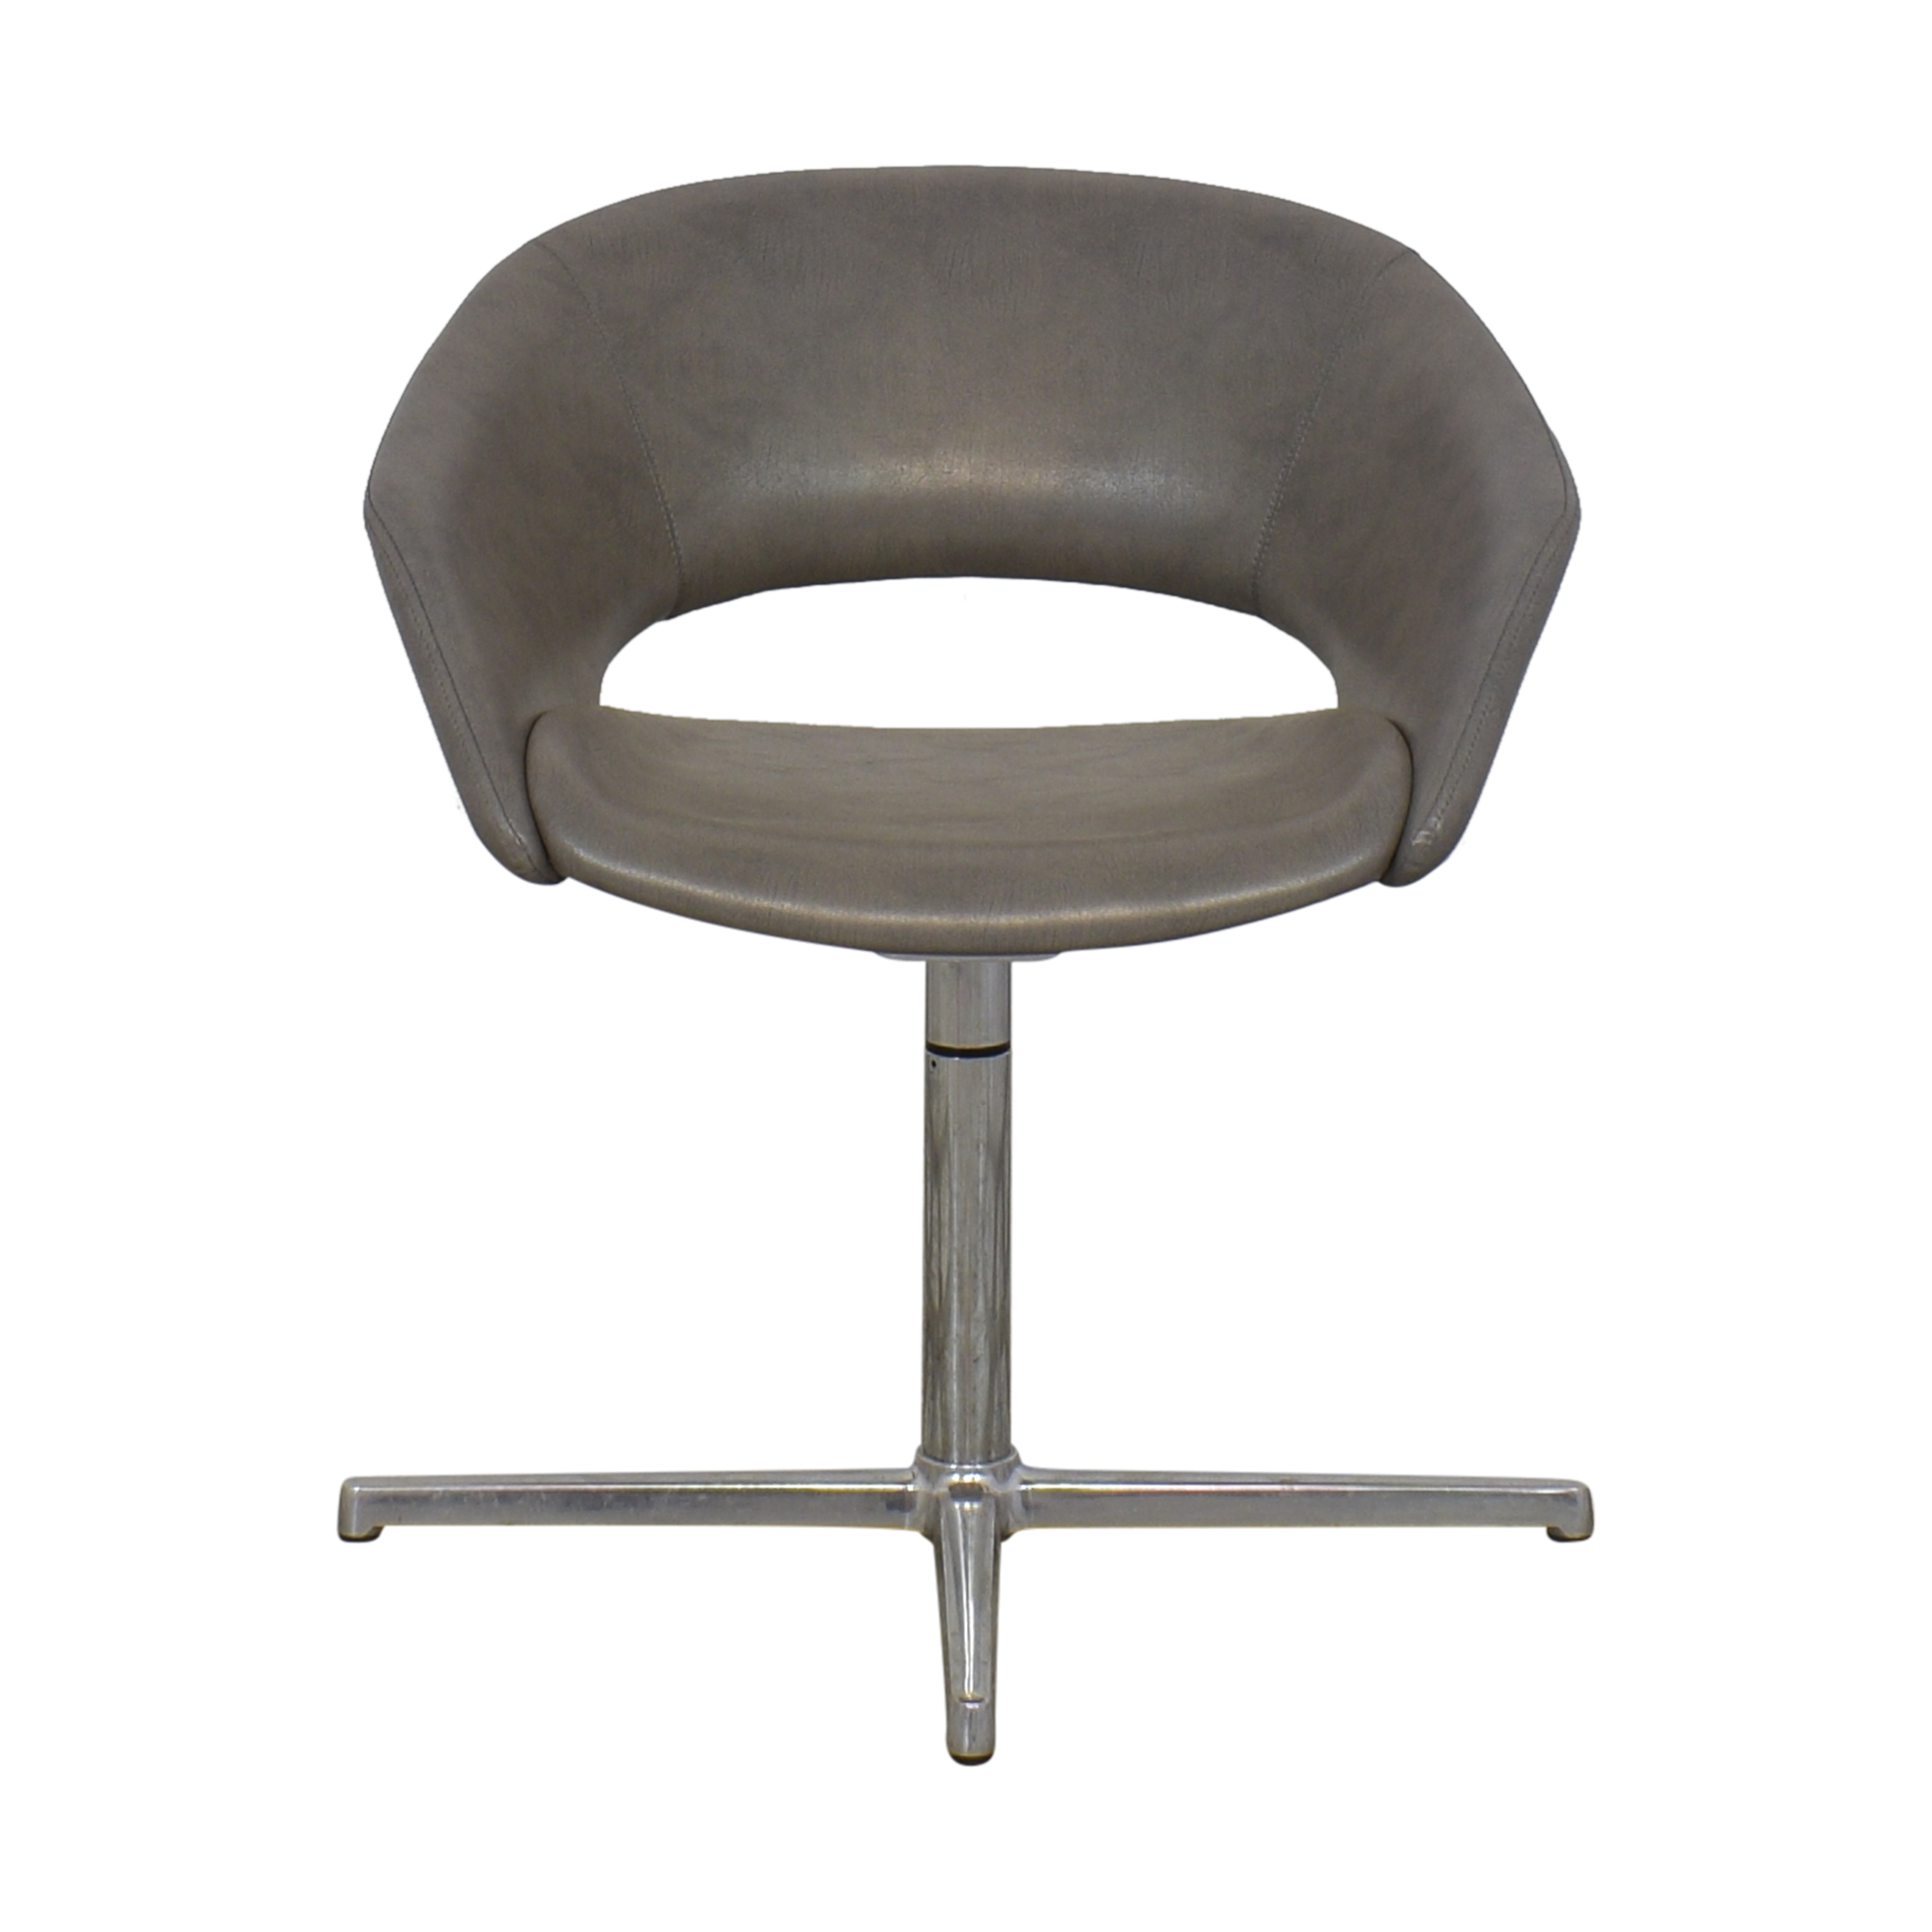 Leland Mod Pedestal Swivel Chair Leland International